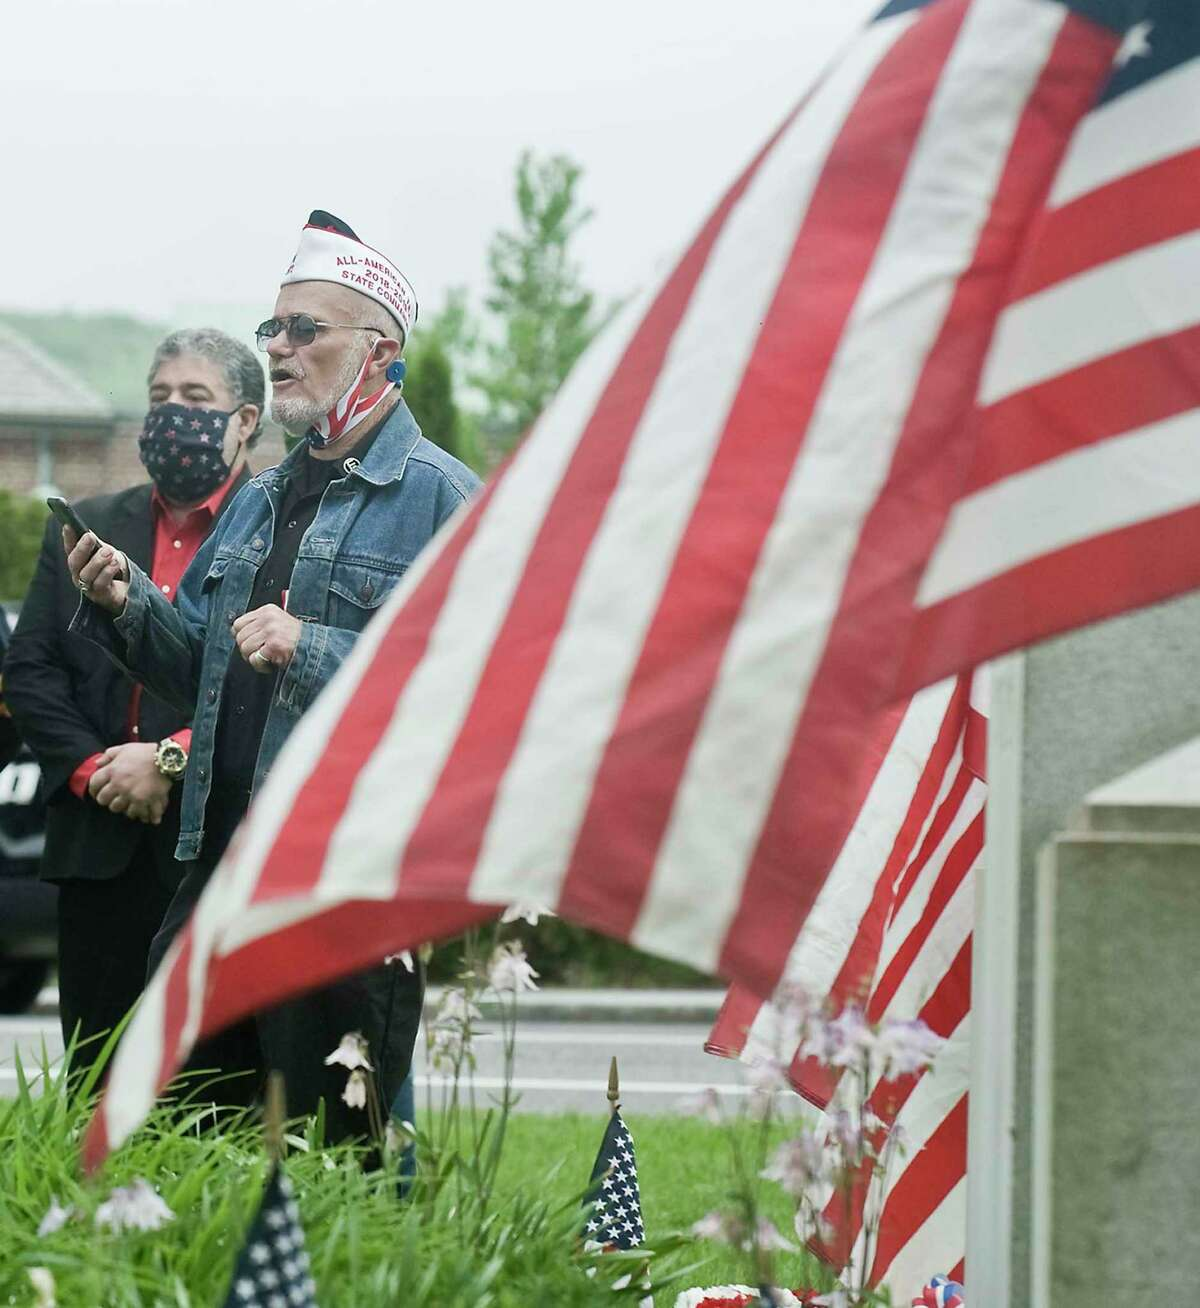 VFW commander, Jim Delancy, welcomes the gathering at New Milford's Memorial Day Service. Monday, May 25, 2020